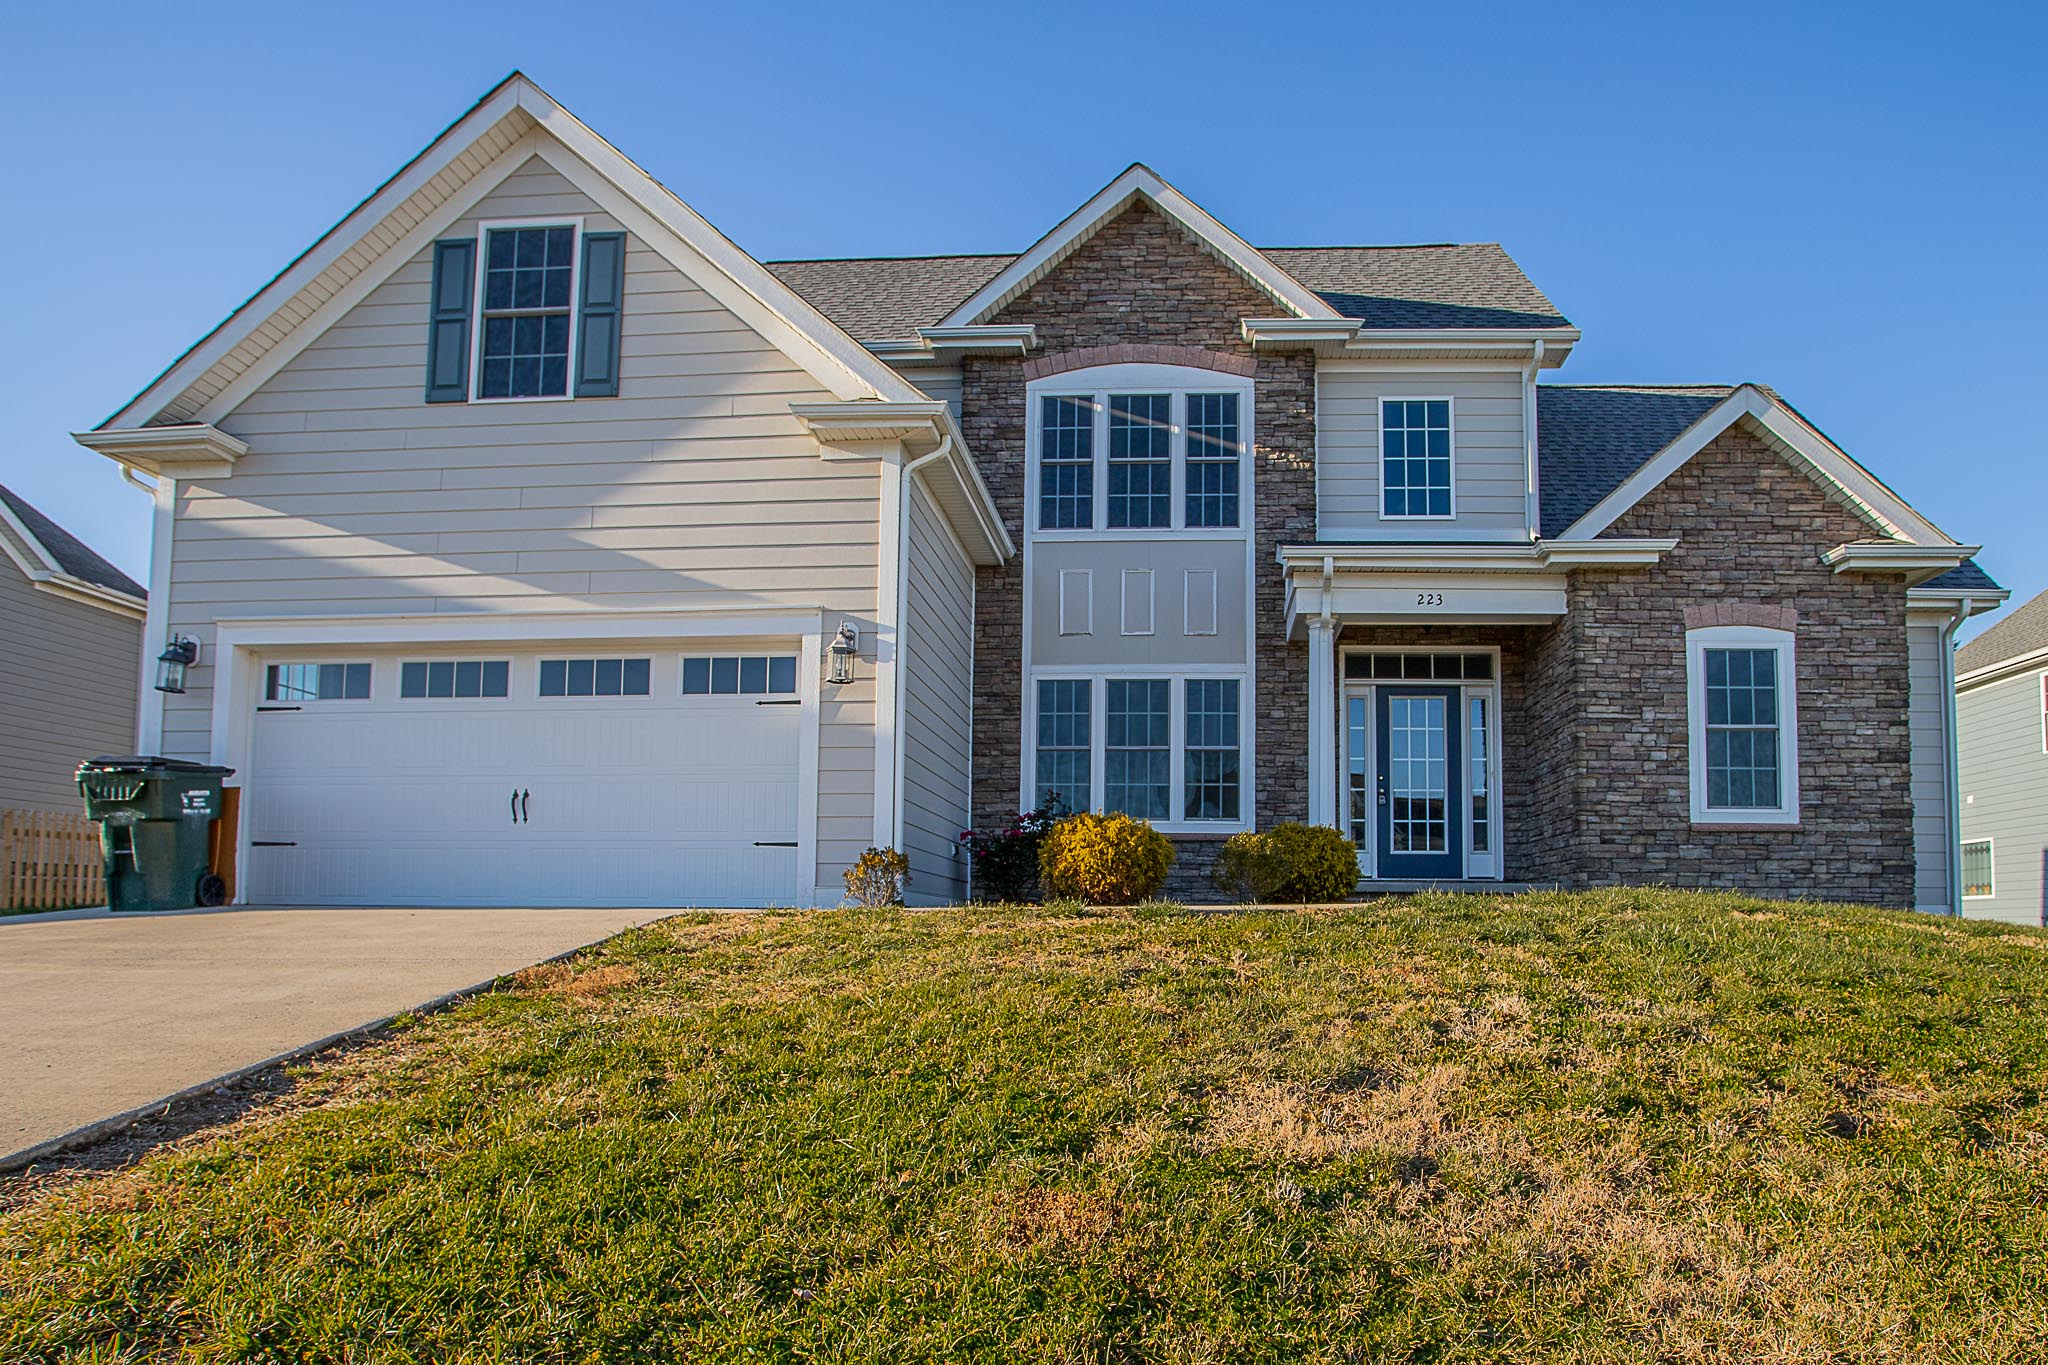 Home for Sale in Fishersville, 223 Windsor Drive